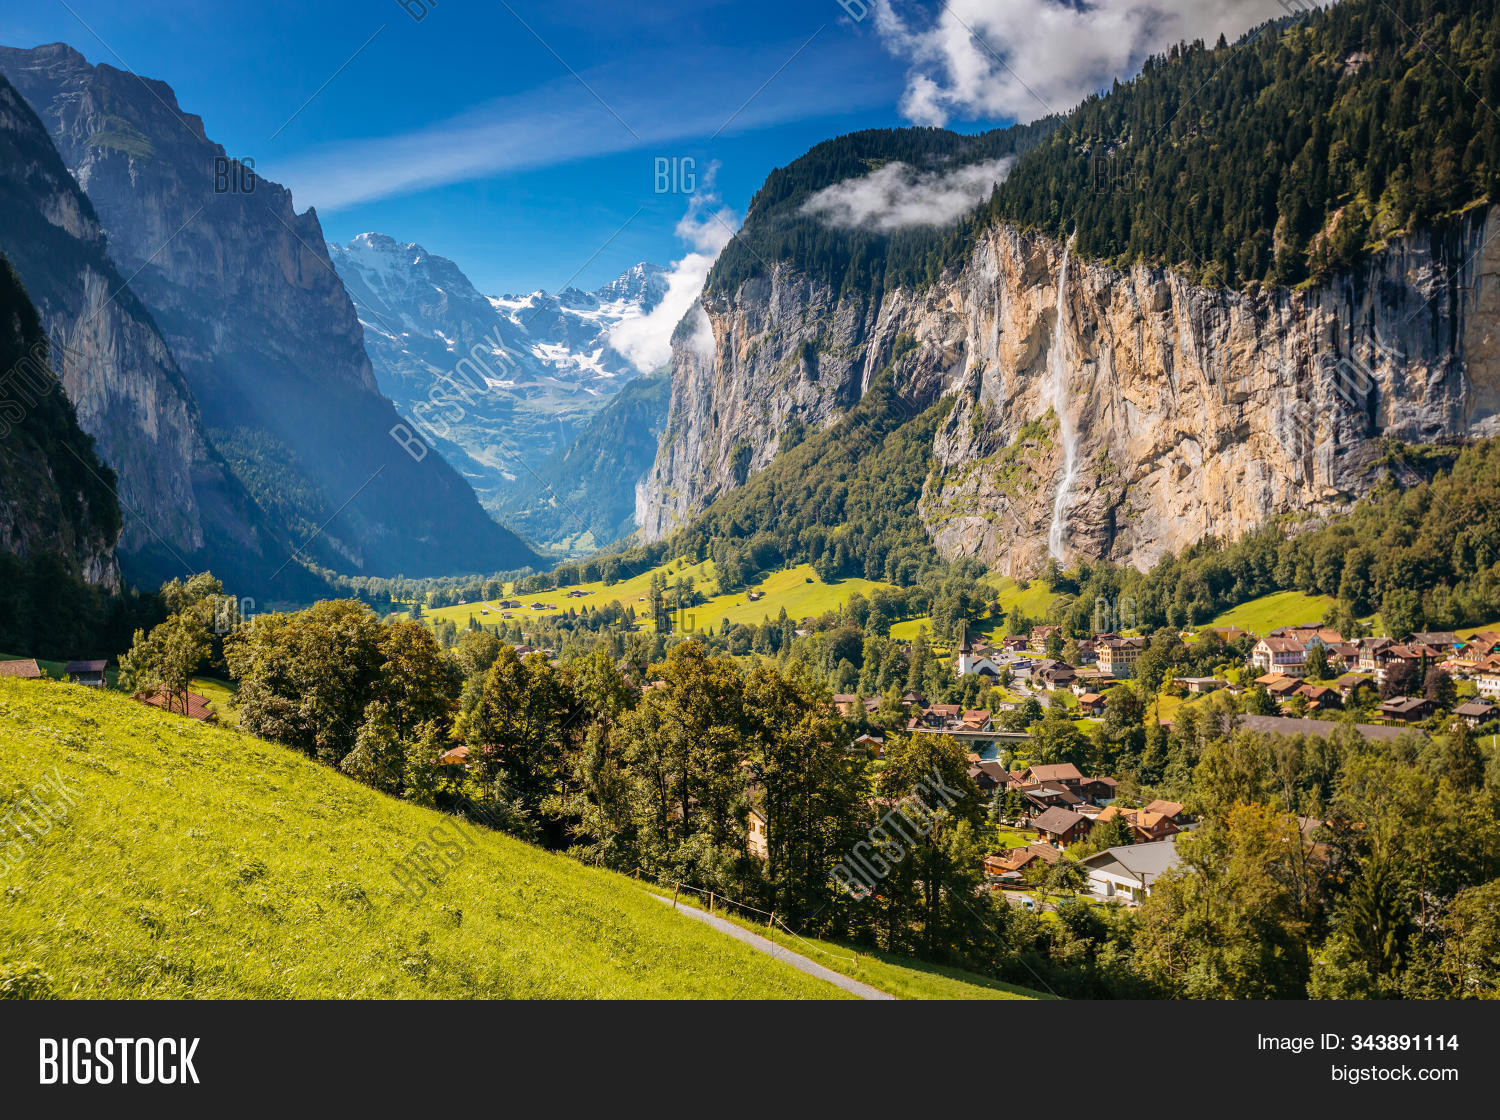 Summer View Alpine Image Photo Free Trial Bigstock Images, Photos, Reviews